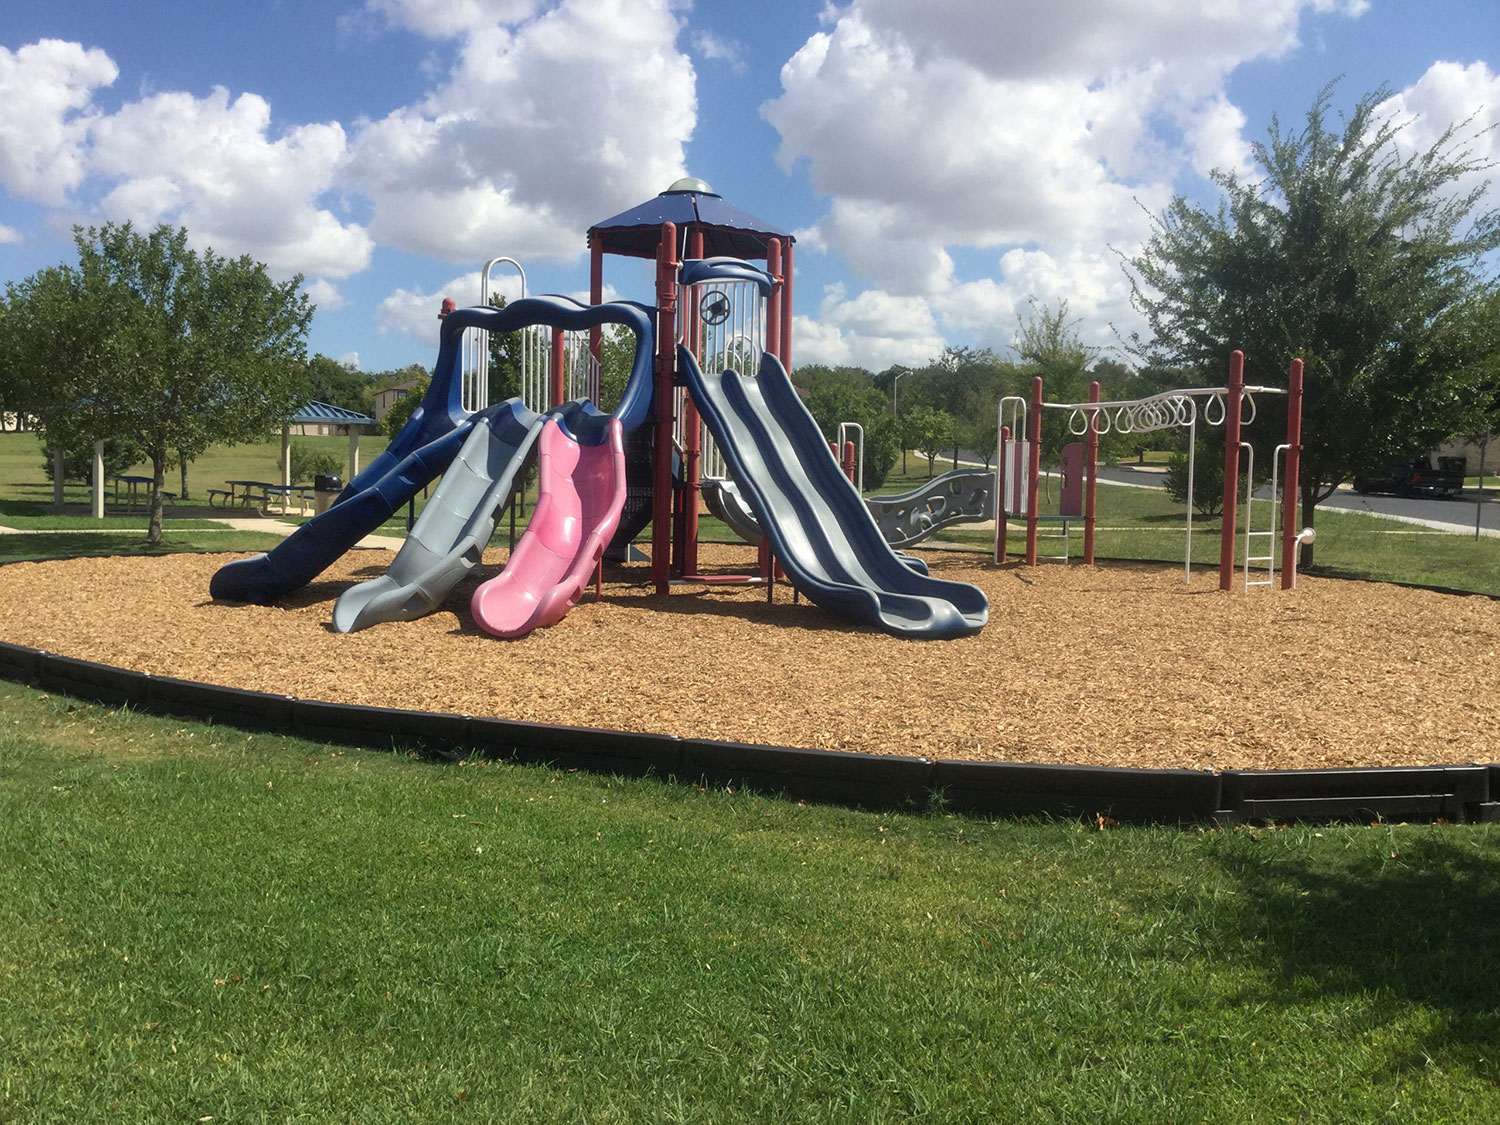 Playscape at University Park in Georgetown, TX